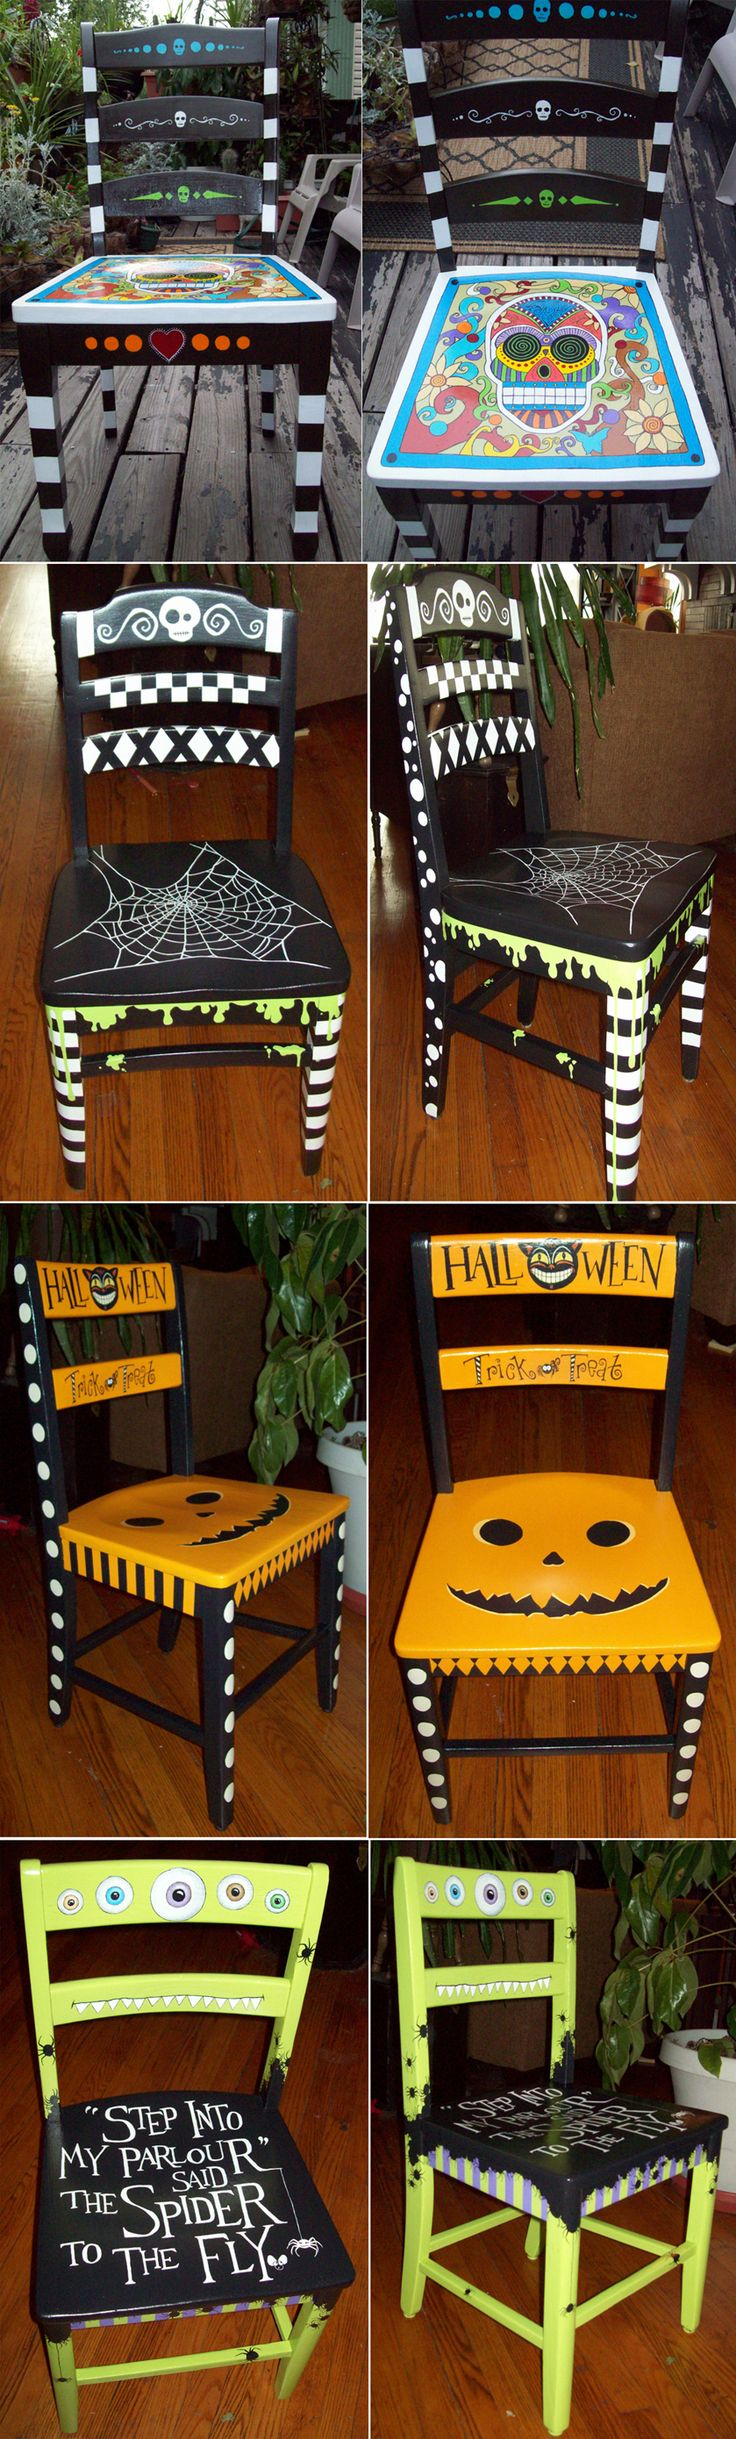 Bubble chairs for under 100 dollars - My Halloween Chairs For My Guests Seating I Want To Paint Like You